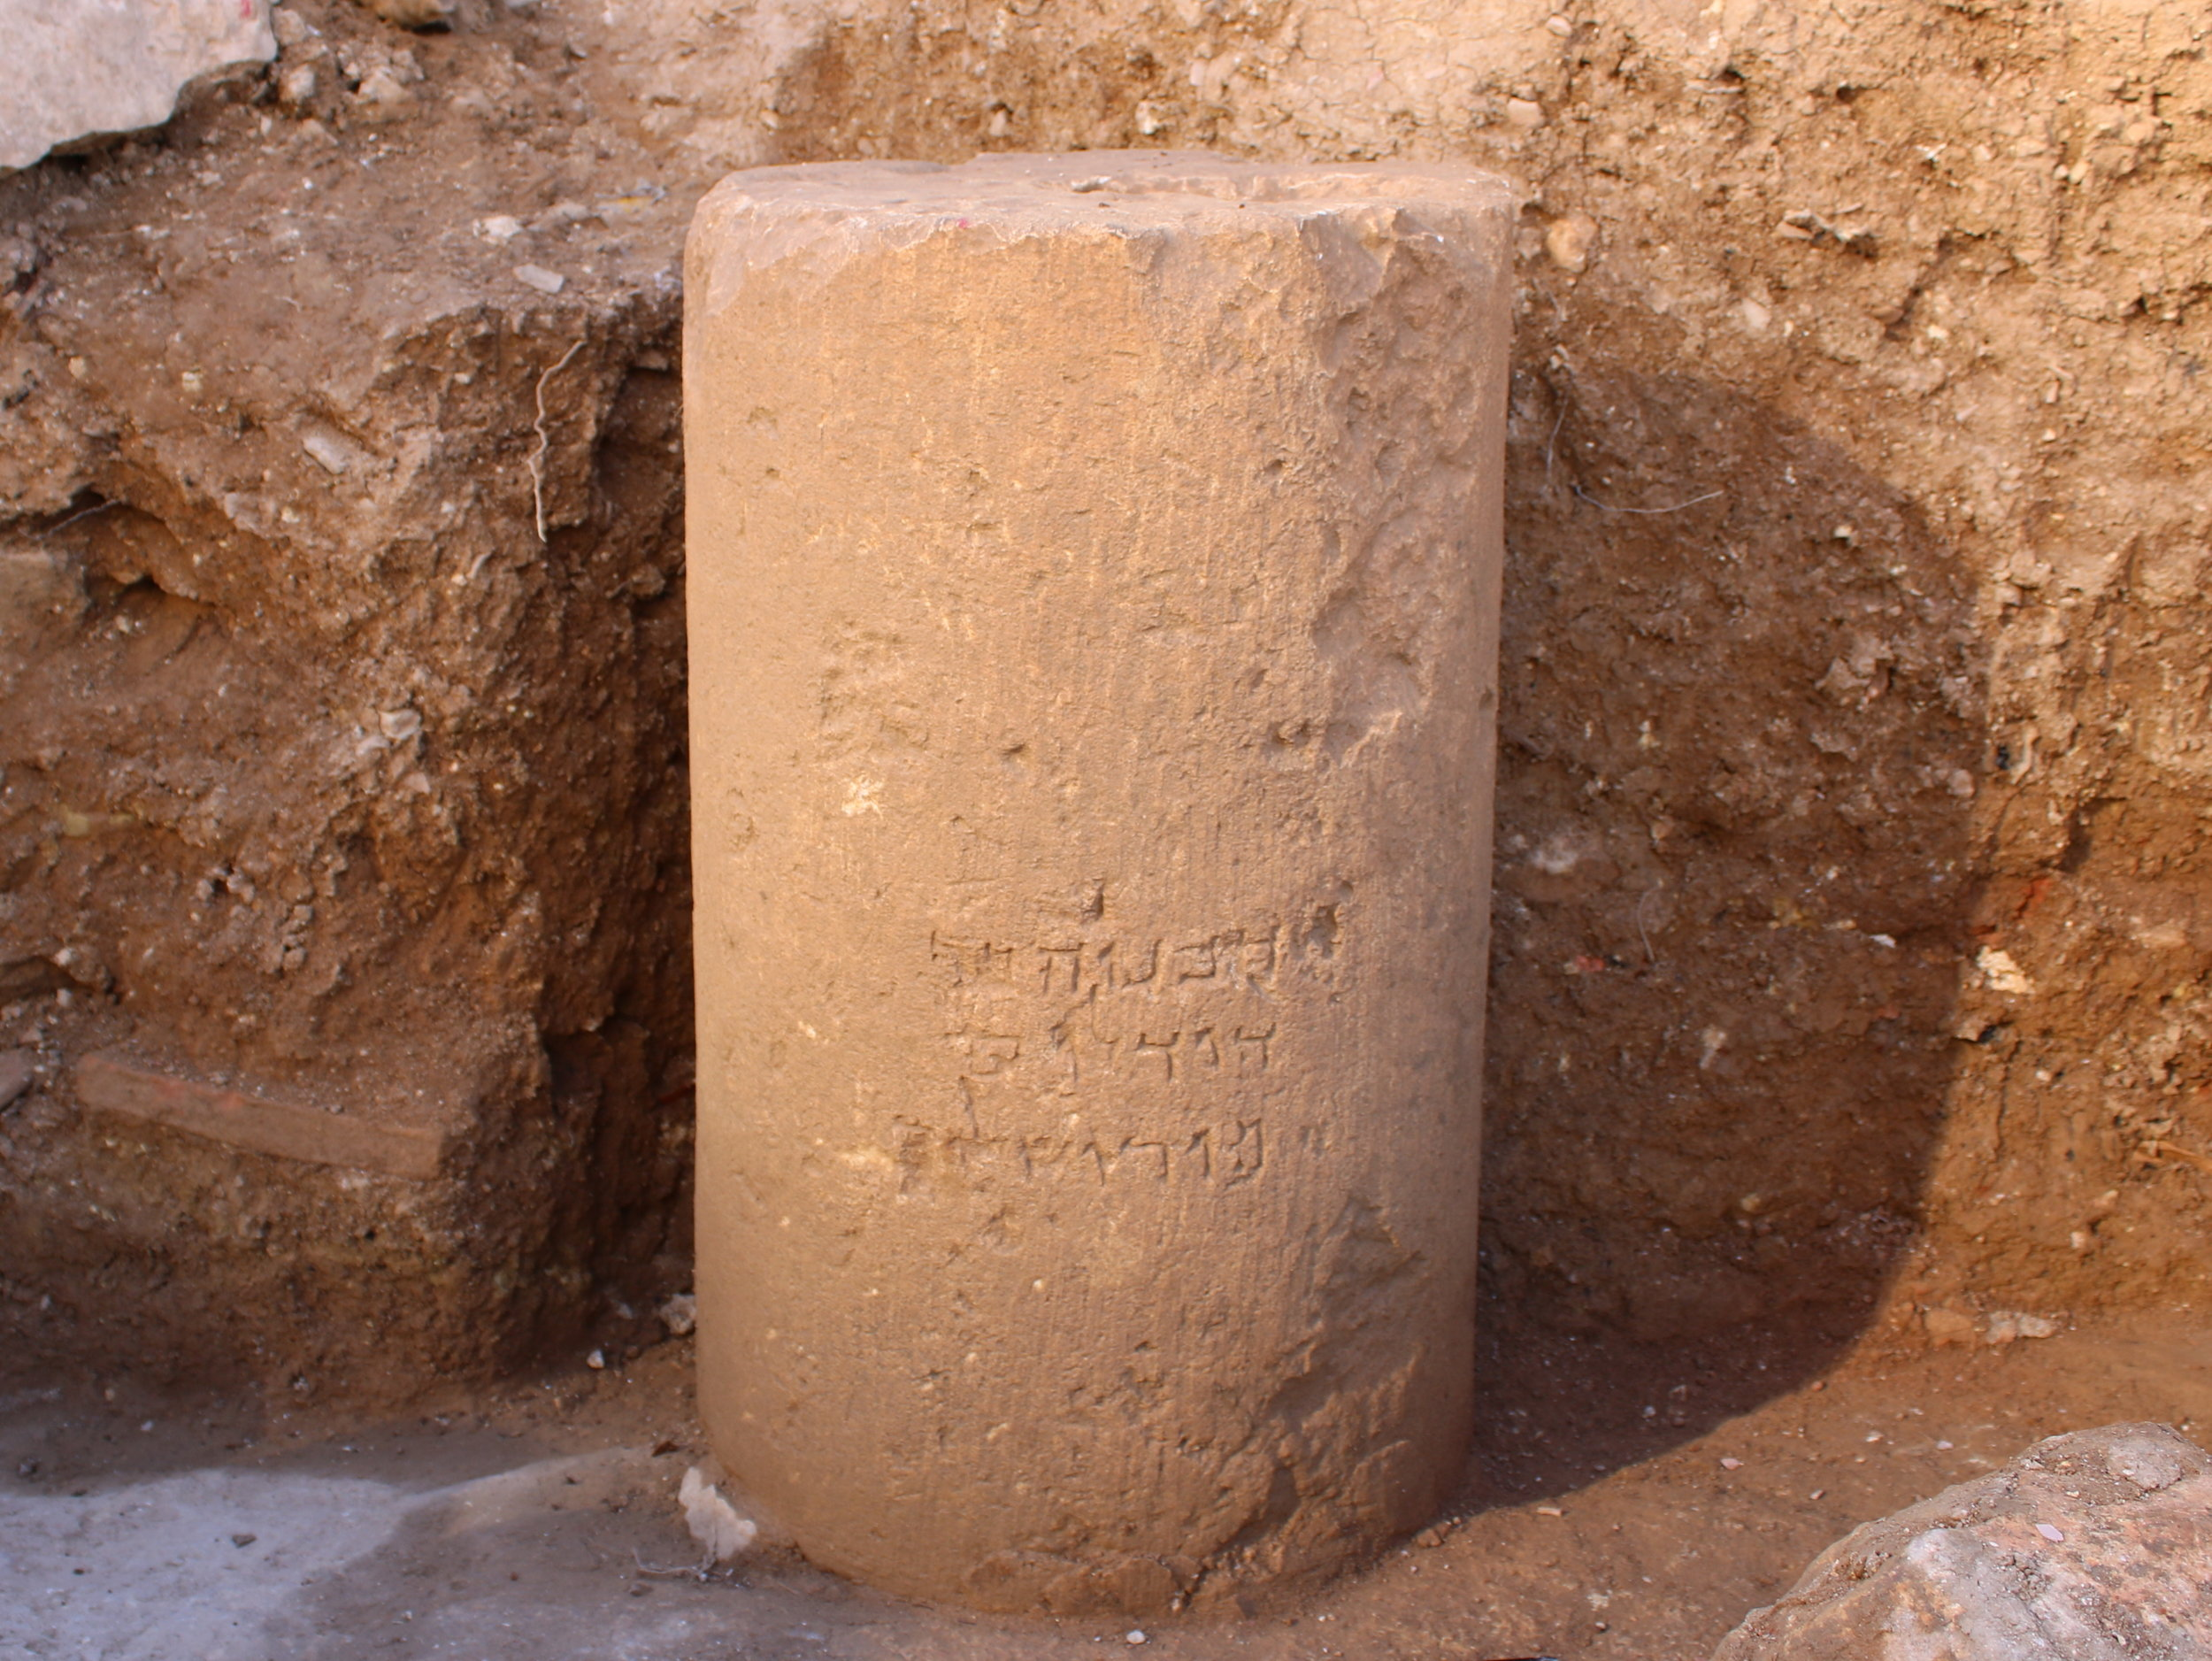 The Inscription as it was found in the excavation. Photo: Danit Levy, IAA